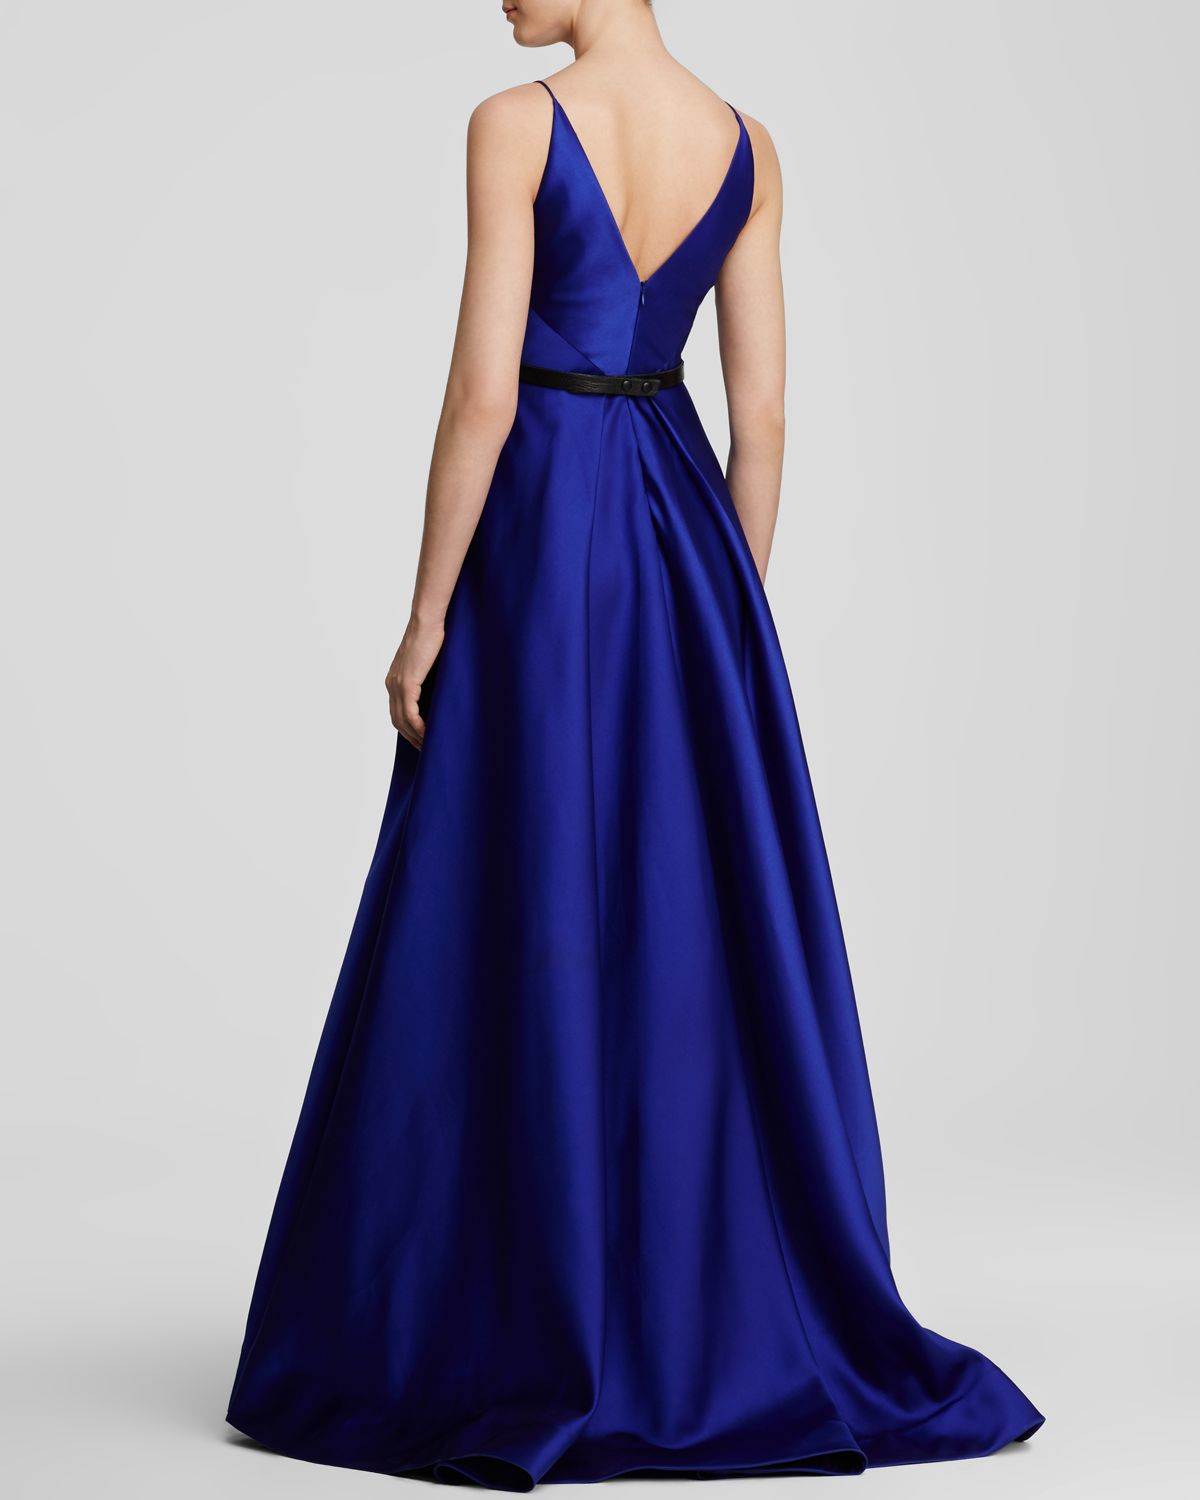 Ml Monique Lhuillier Gown - Best Seller Dress and Gown Review